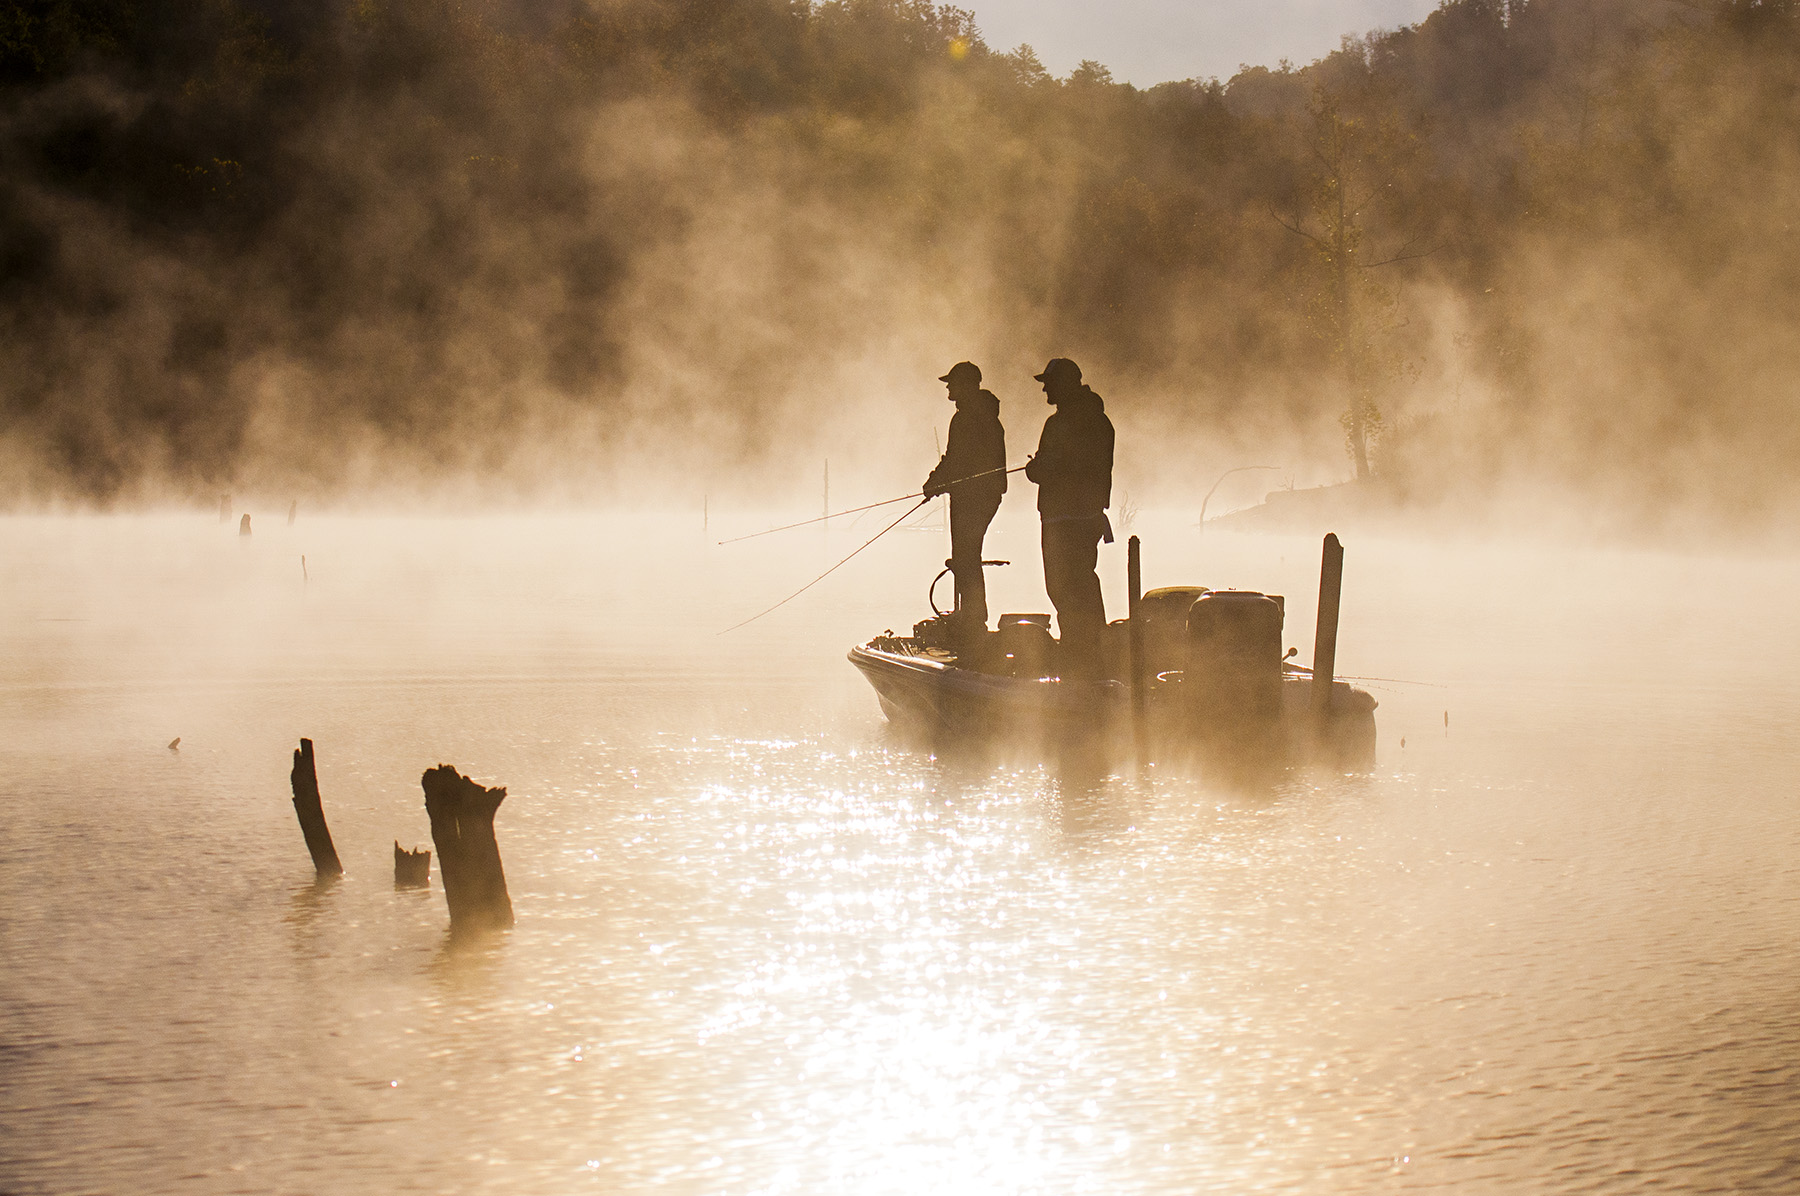 fog-early-morning-bass-fishing-lake-sweetwater-fishing-tv-television-show-jason-stemple